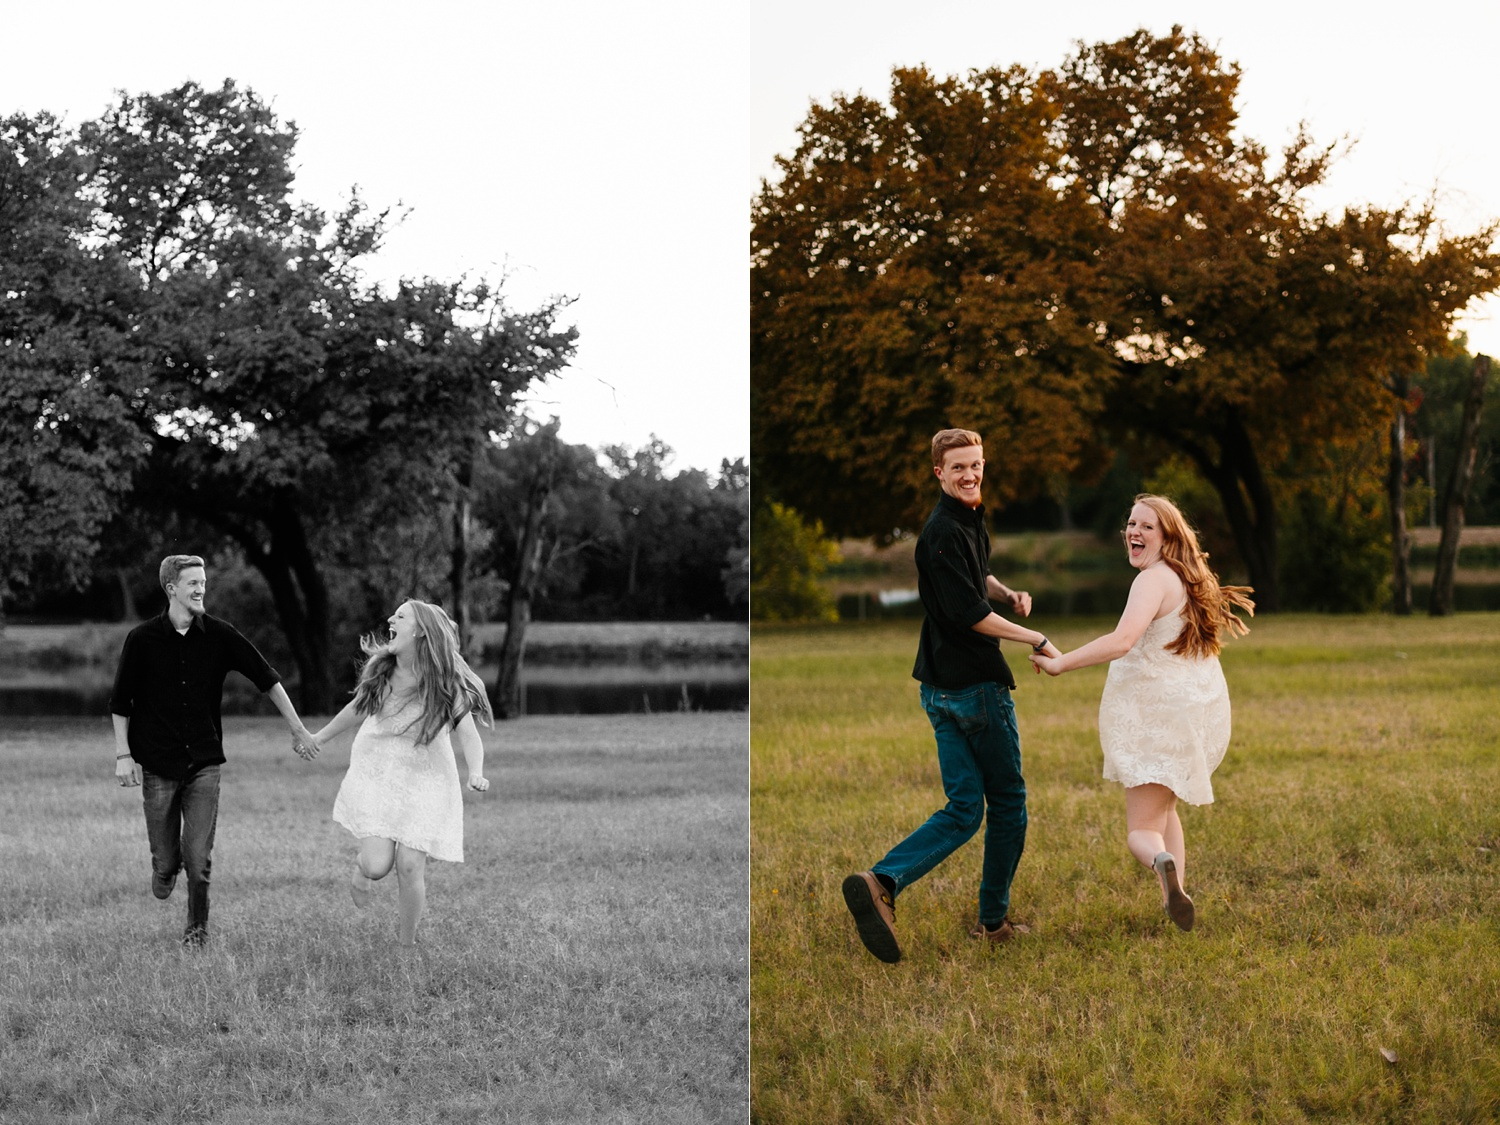 Kayla + Alex _ a joyful and loving engagement shoot in Waco, Texas by North Texas Wedding Photographer Rachel Meagan Photography _65